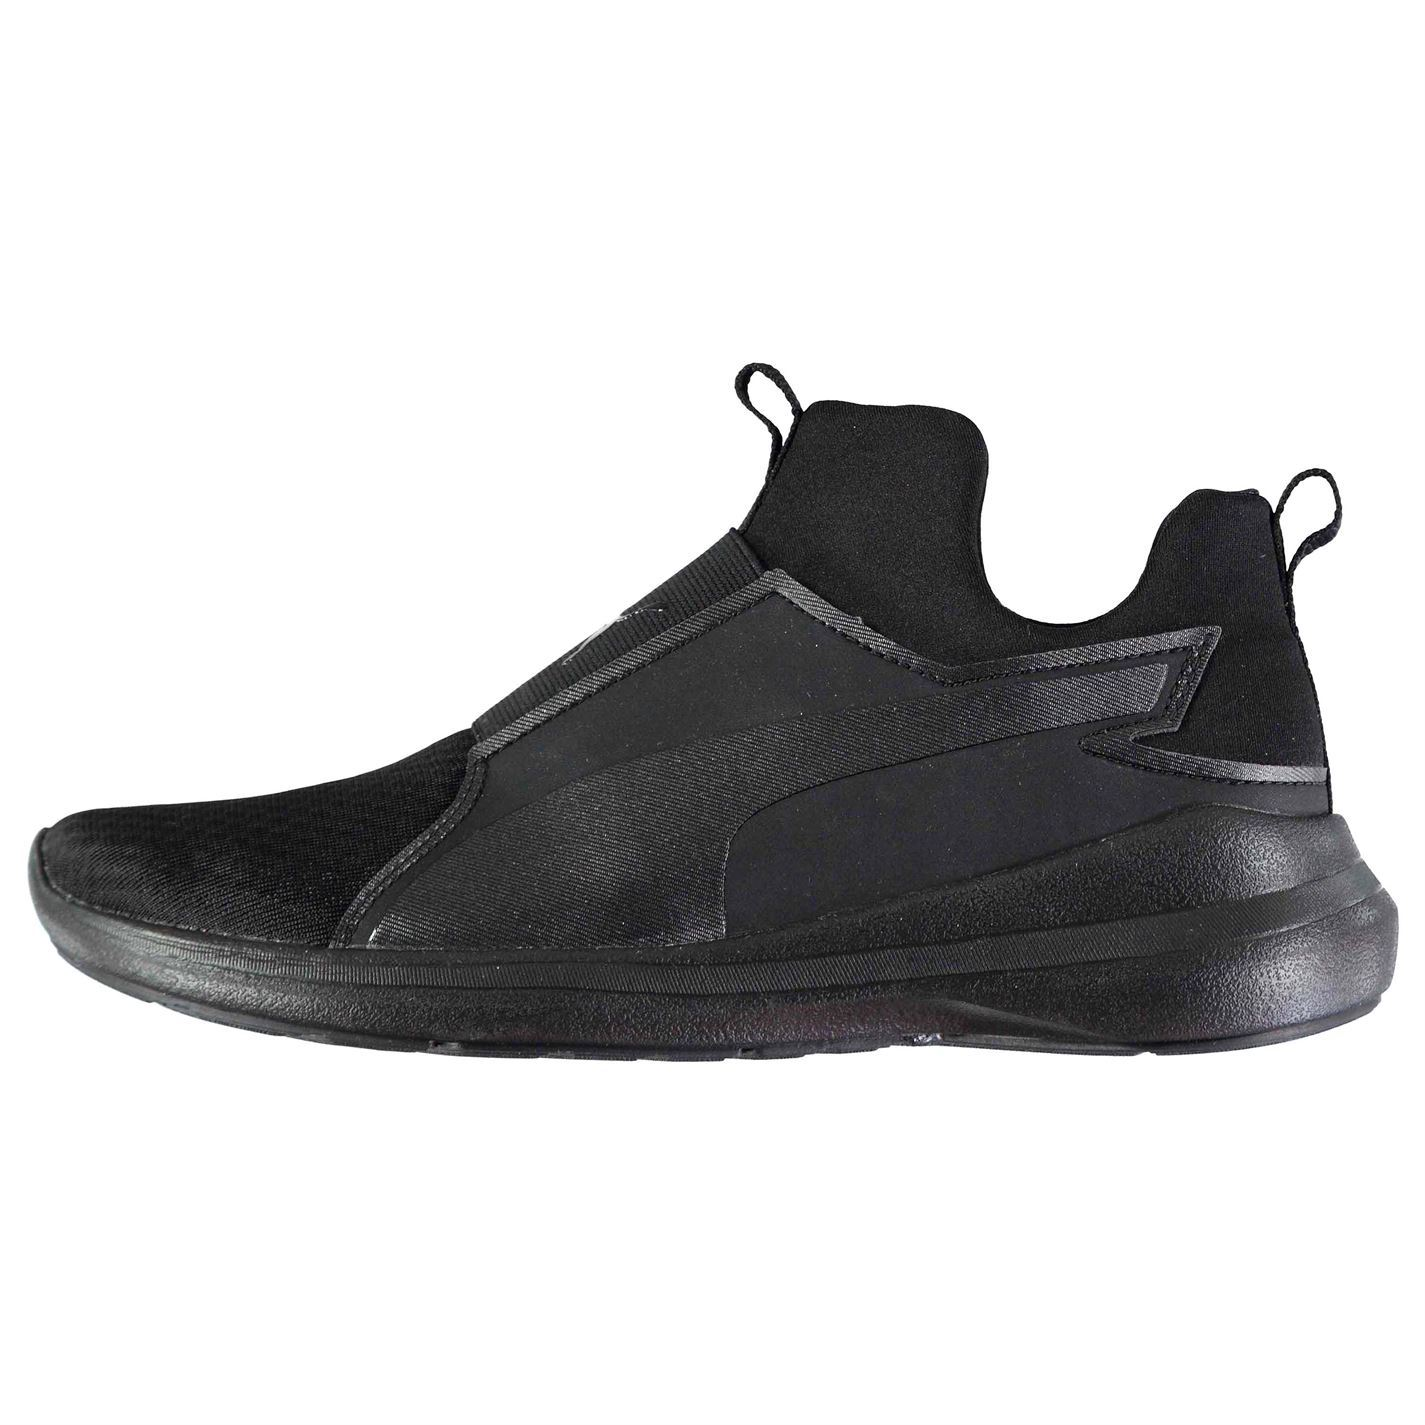 ... Puma Rebel Mid Fitness Training Shoes Womens Black Gym Workout Trainers  Sneakers ... 6789b3e8d